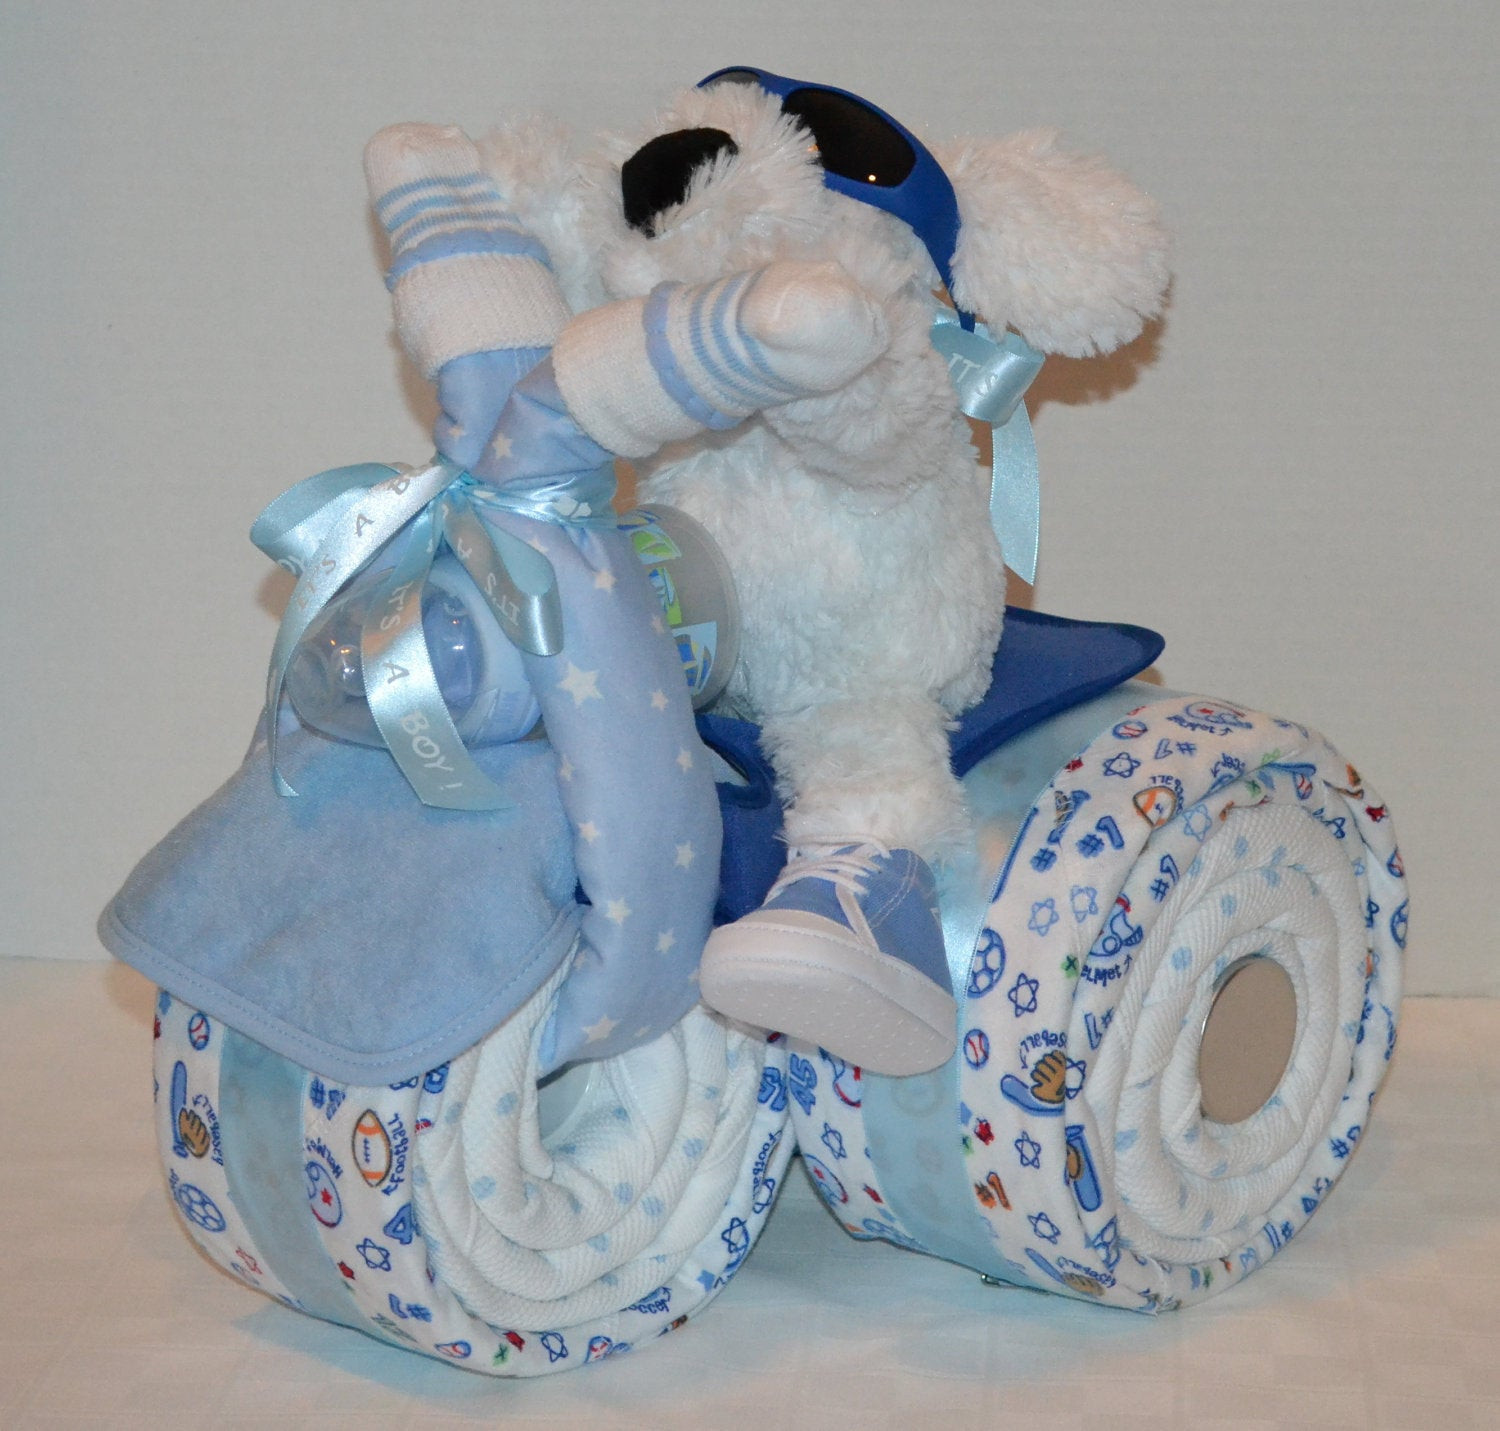 Best ideas about Baby Boy Shower Gift Ideas . Save or Pin Tricycle Trike Diaper Cake Baby Shower Gift Sports theme Now.